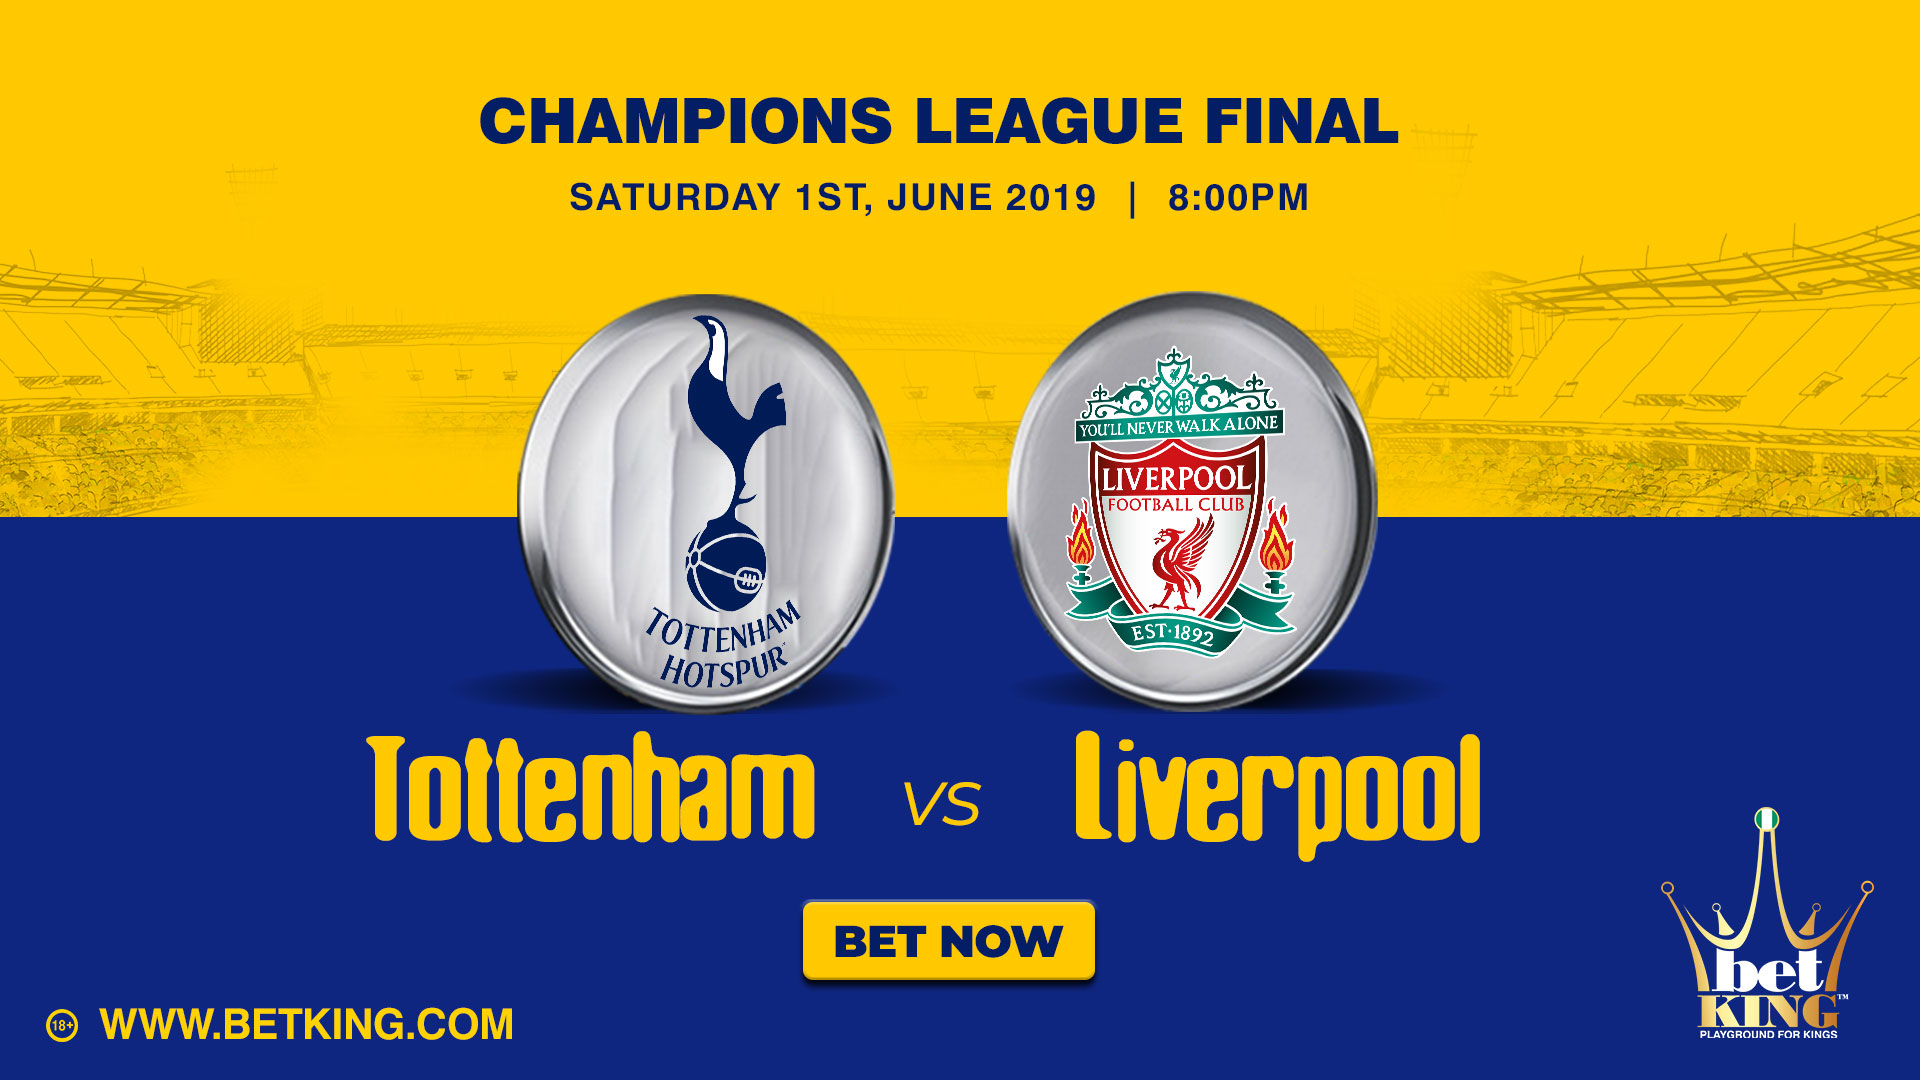 Betking UCL final